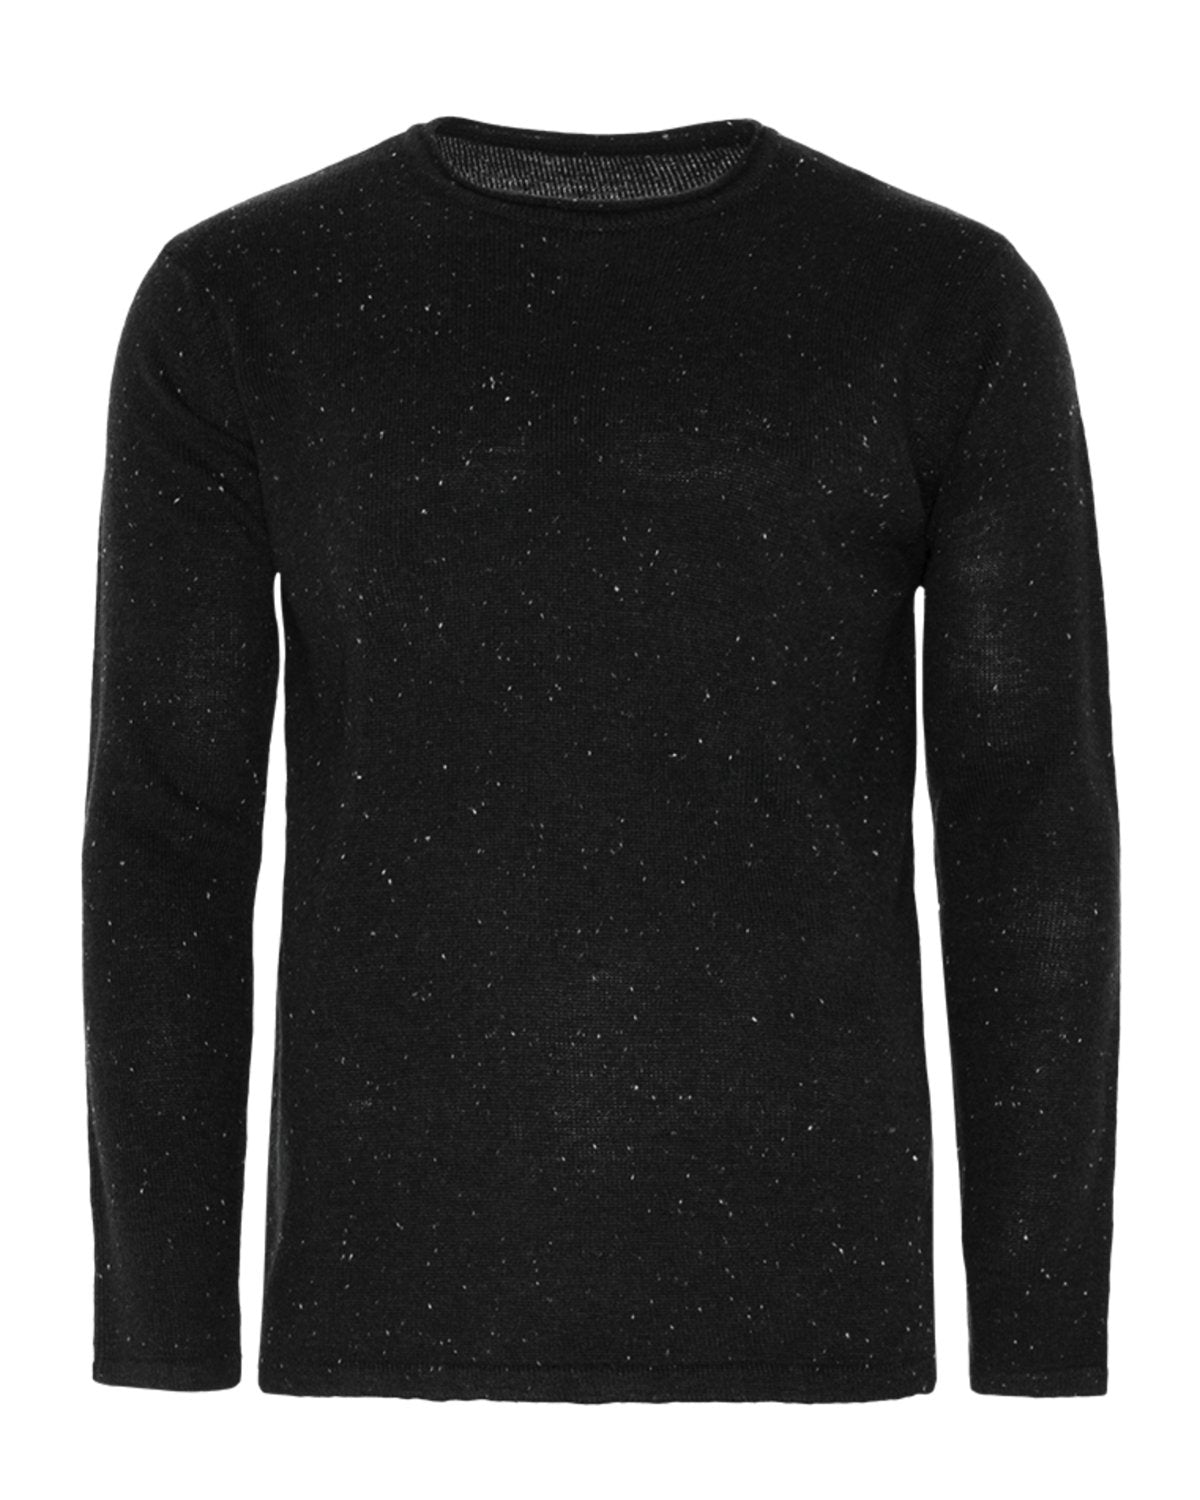 Lightweight Longline Raw Edge Knit Charcoal